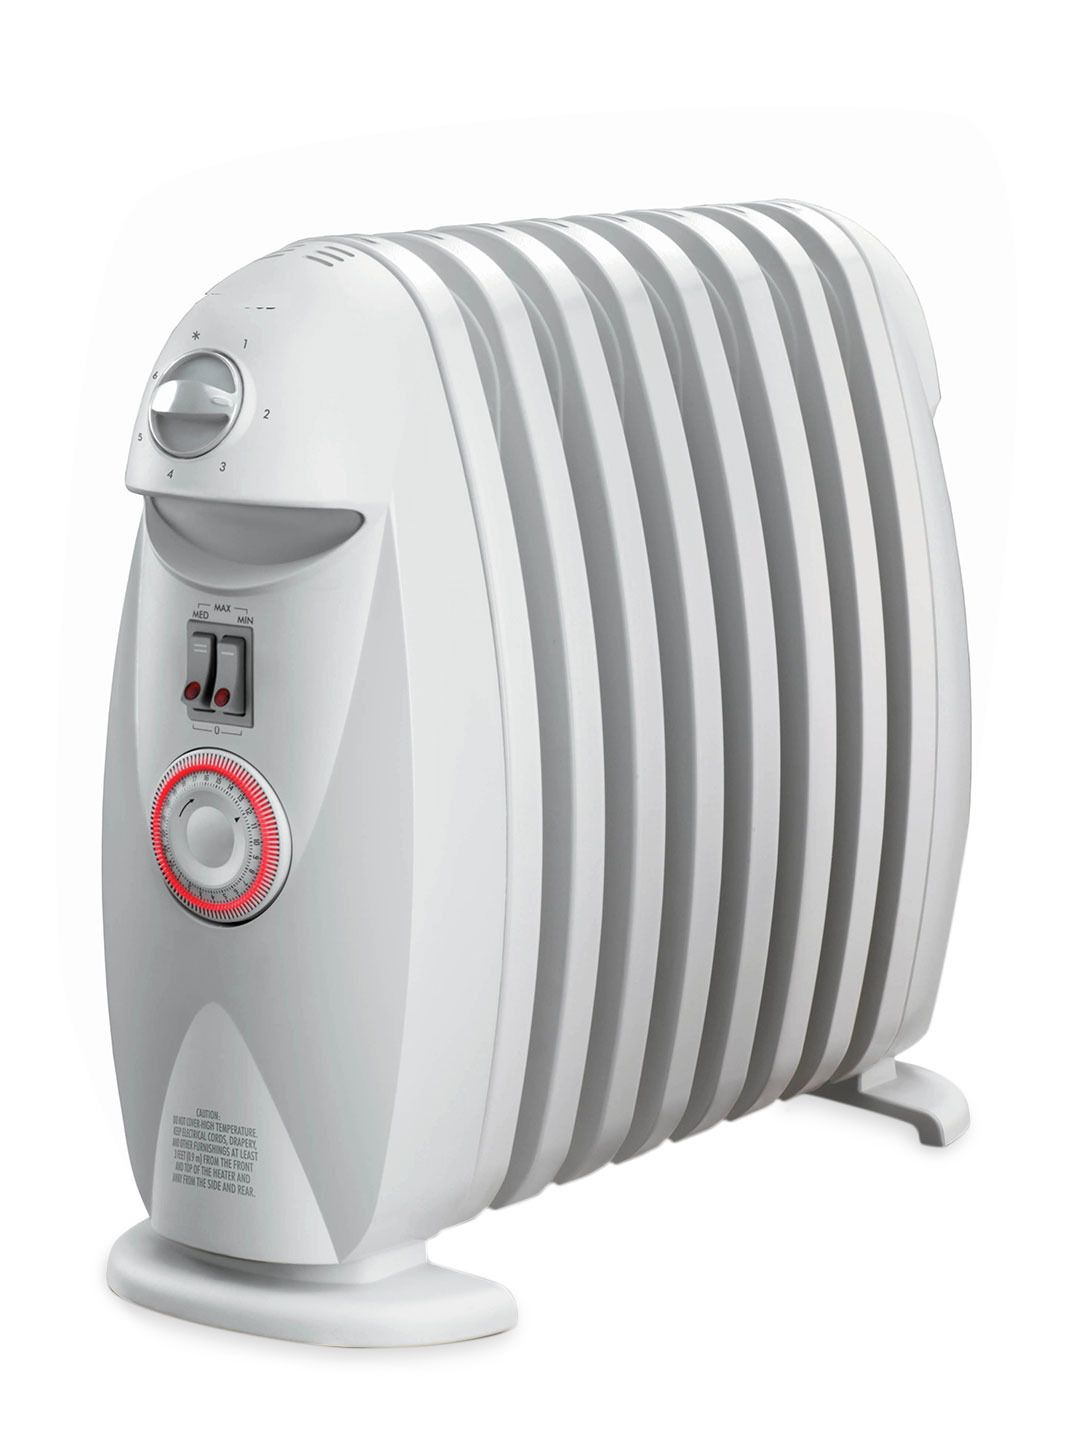 Solaris Heater With Timer Timerhome Electronics Homeaccessories Oil Filled Radiator Portable Heater Radiators